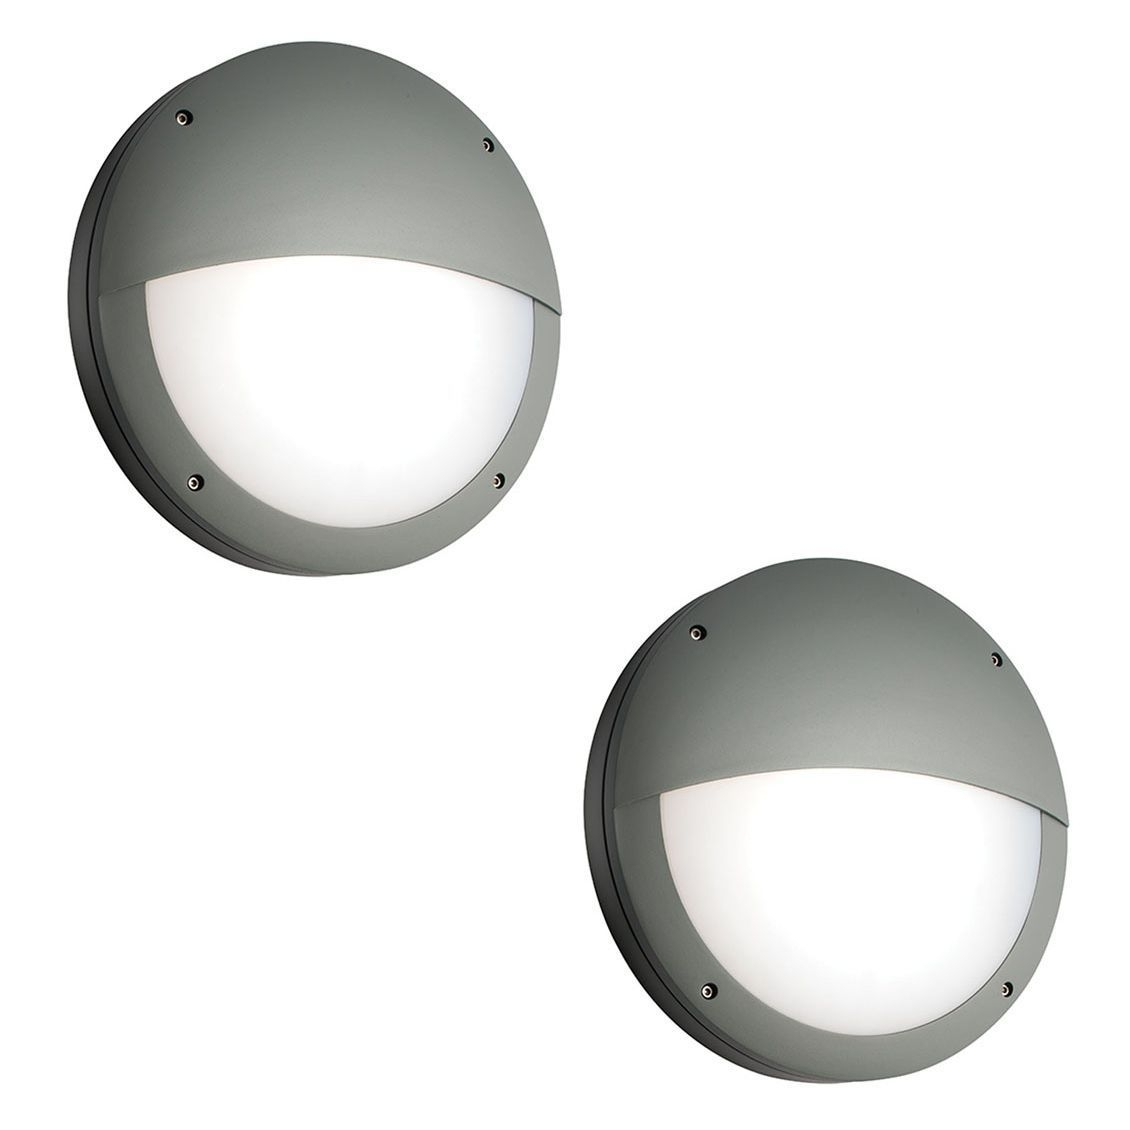 Inspiration about Pair Saxby 61754 Luik Eyelid Grey Aluminium Round Led Outdoor Wall Light Intended For White Led Outdoor Wall Lights (#4 of 15)